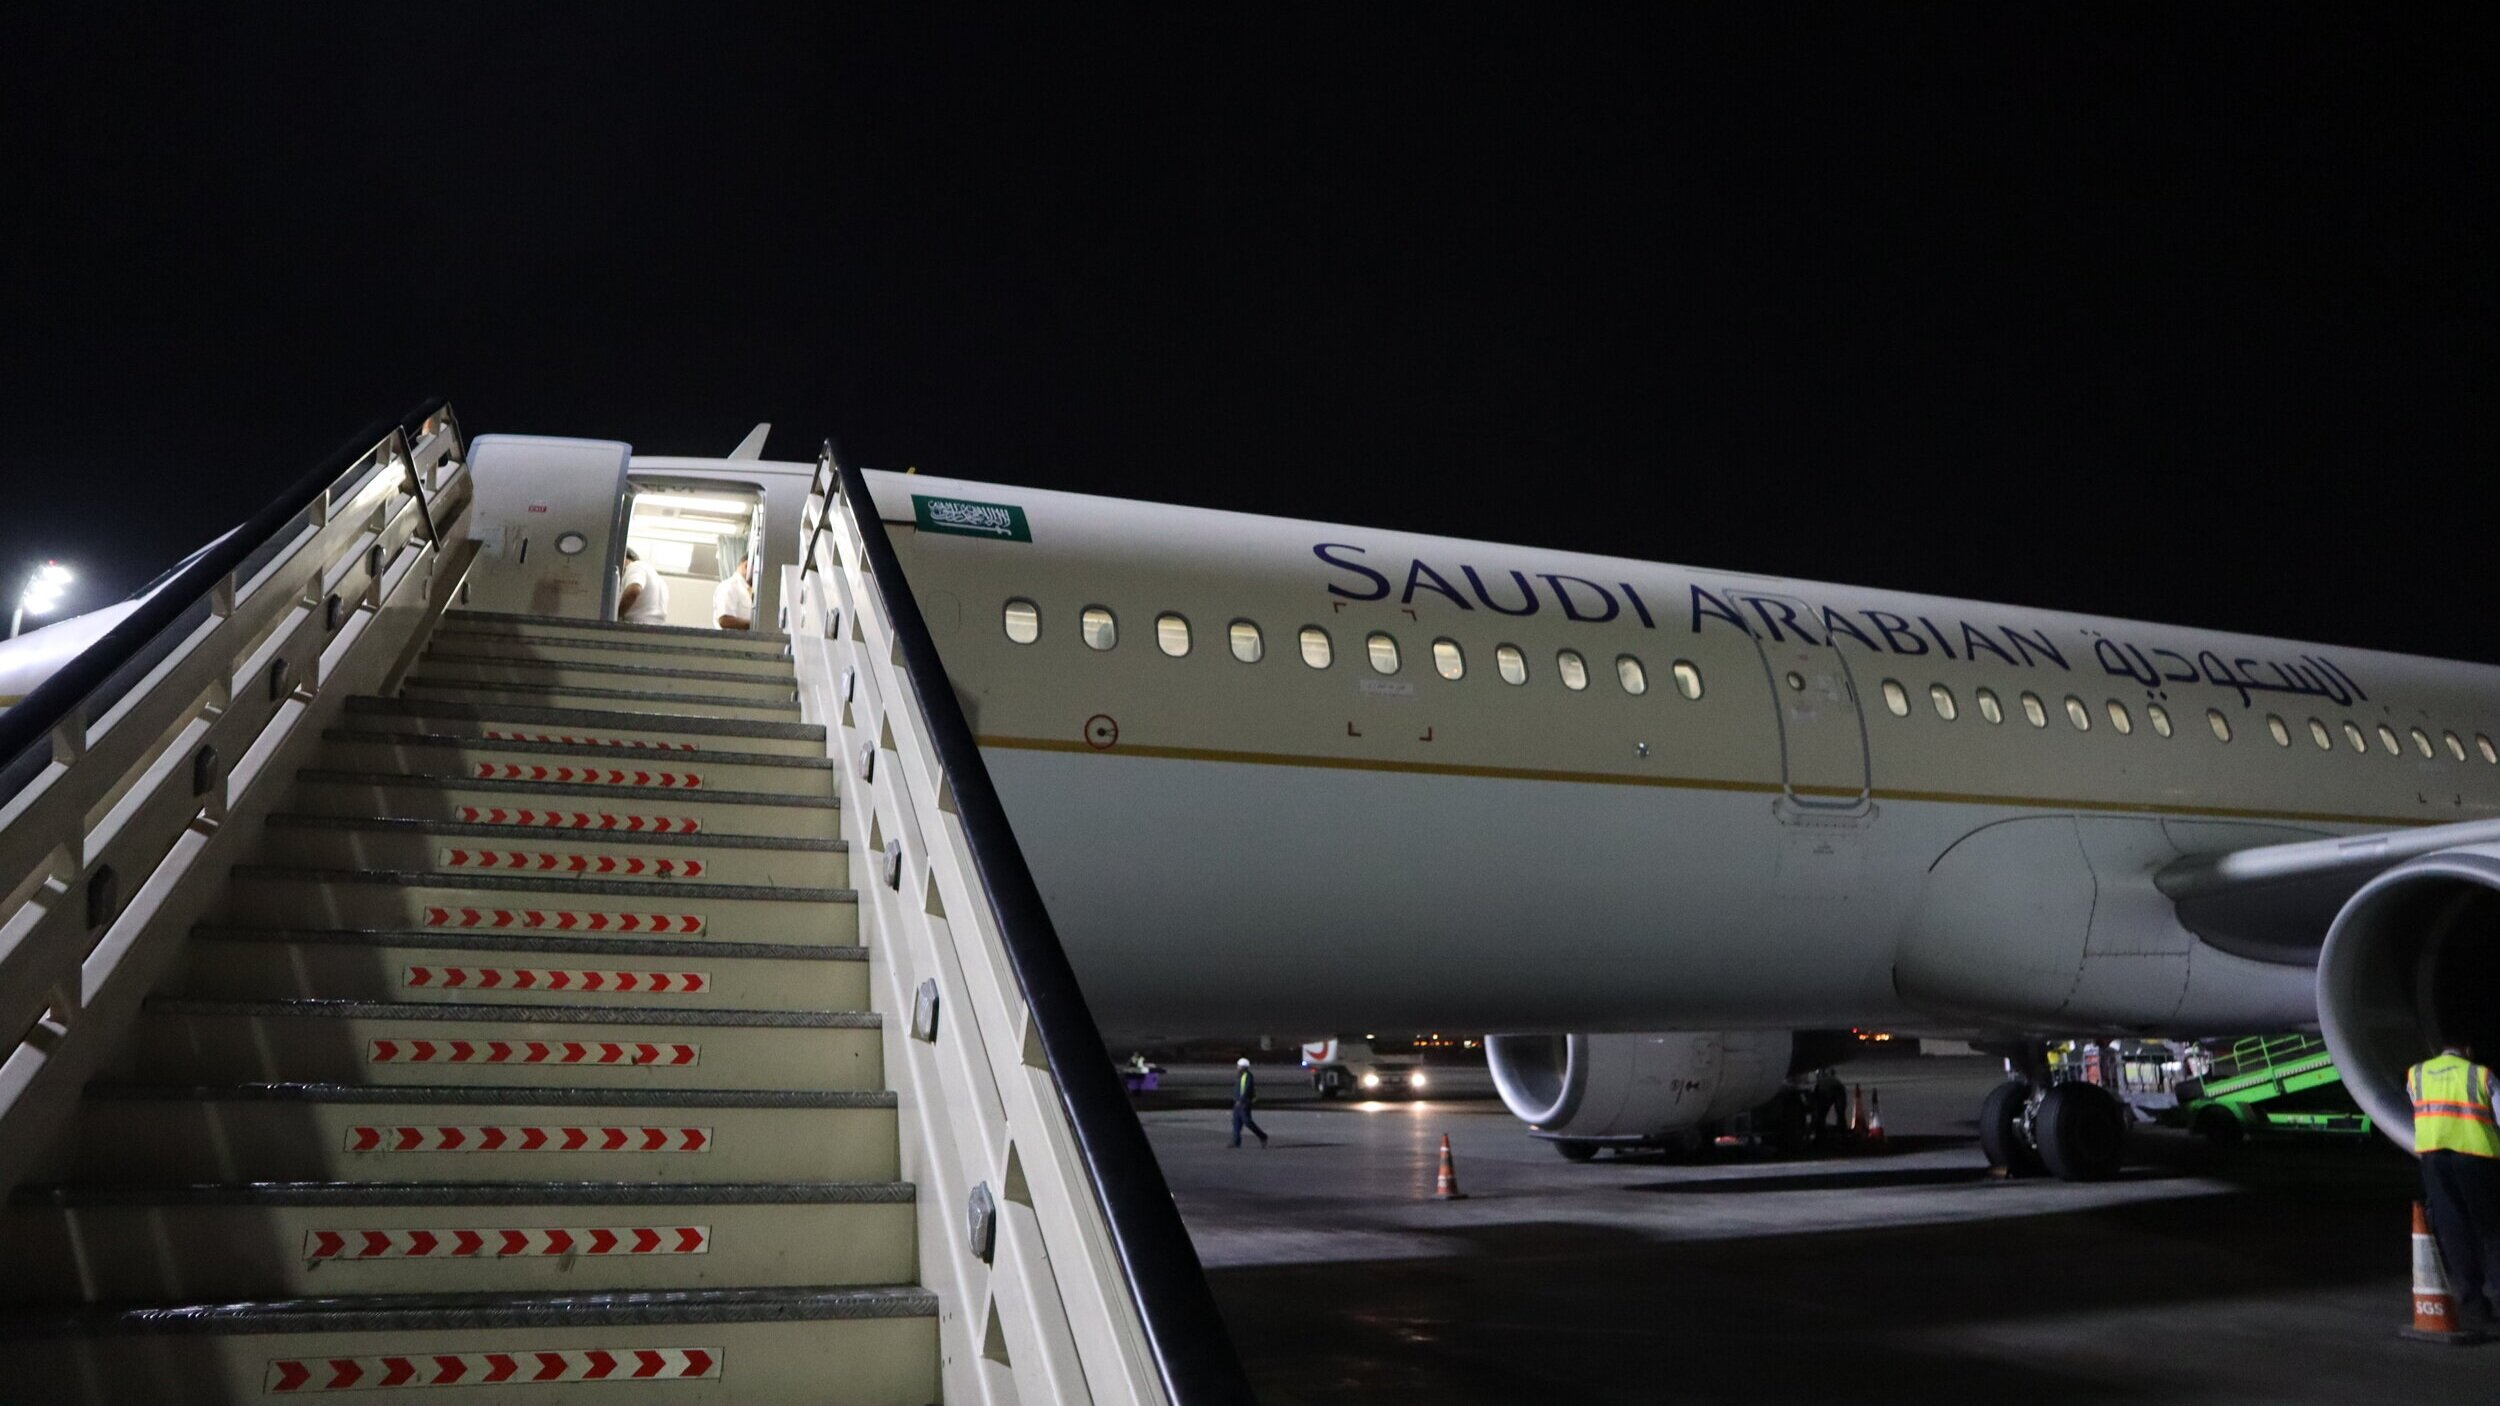 Saudia+Airlines+Review